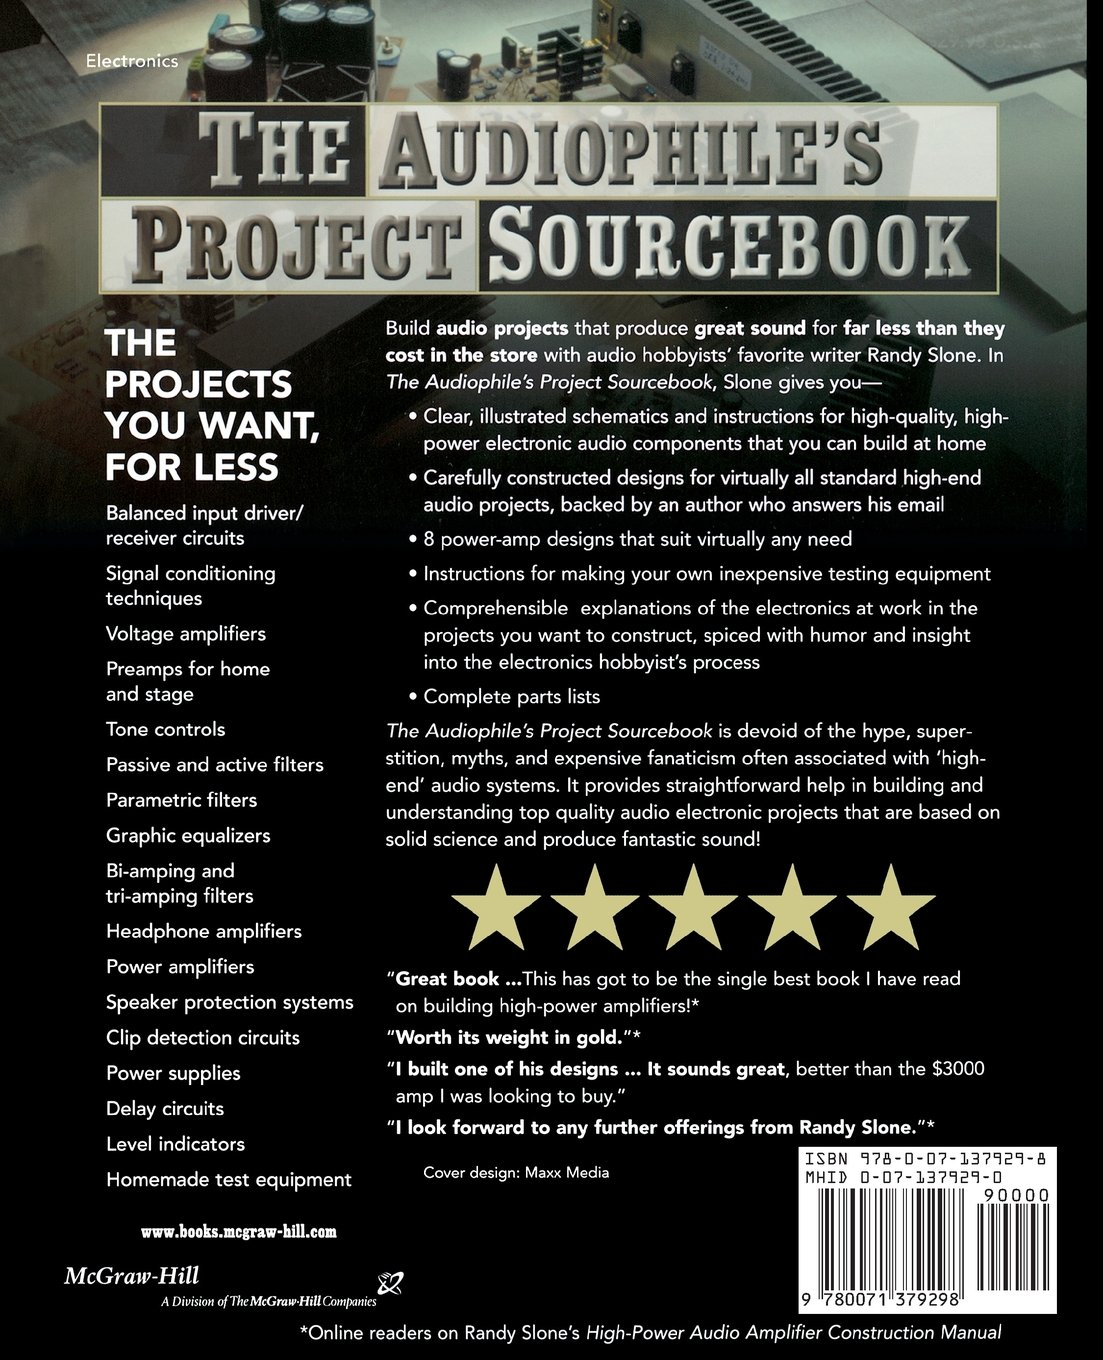 The Audiophiles Project Sourcebook: 80 High-Performance Audio Electronics Projects: G. Randy Slone: 9780071379298: Amazon.com: Books